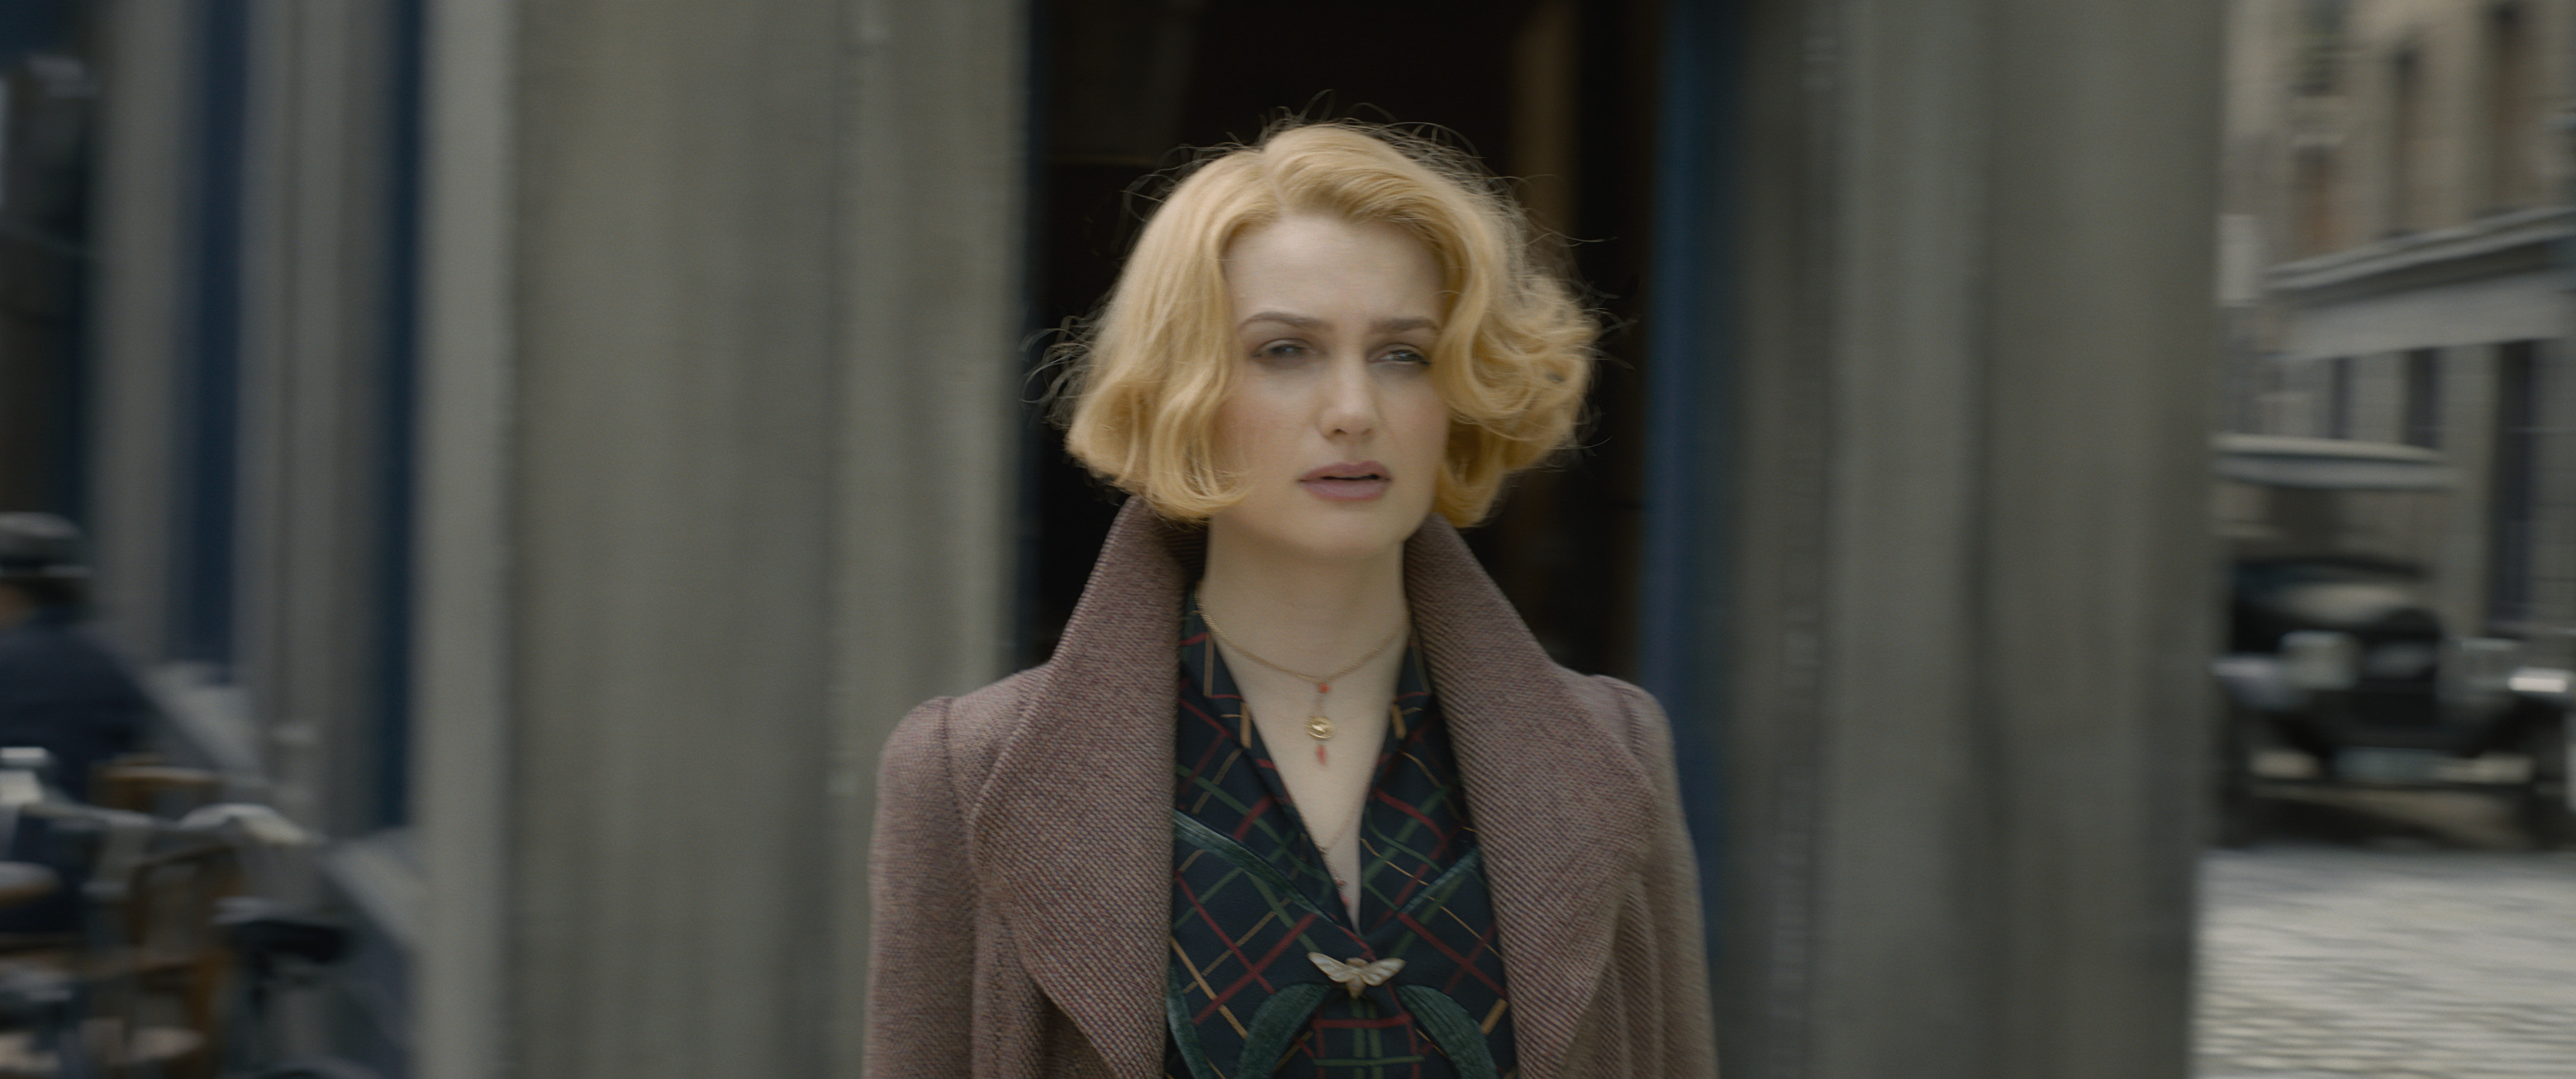 Alison Sudol as Queen Goldstein